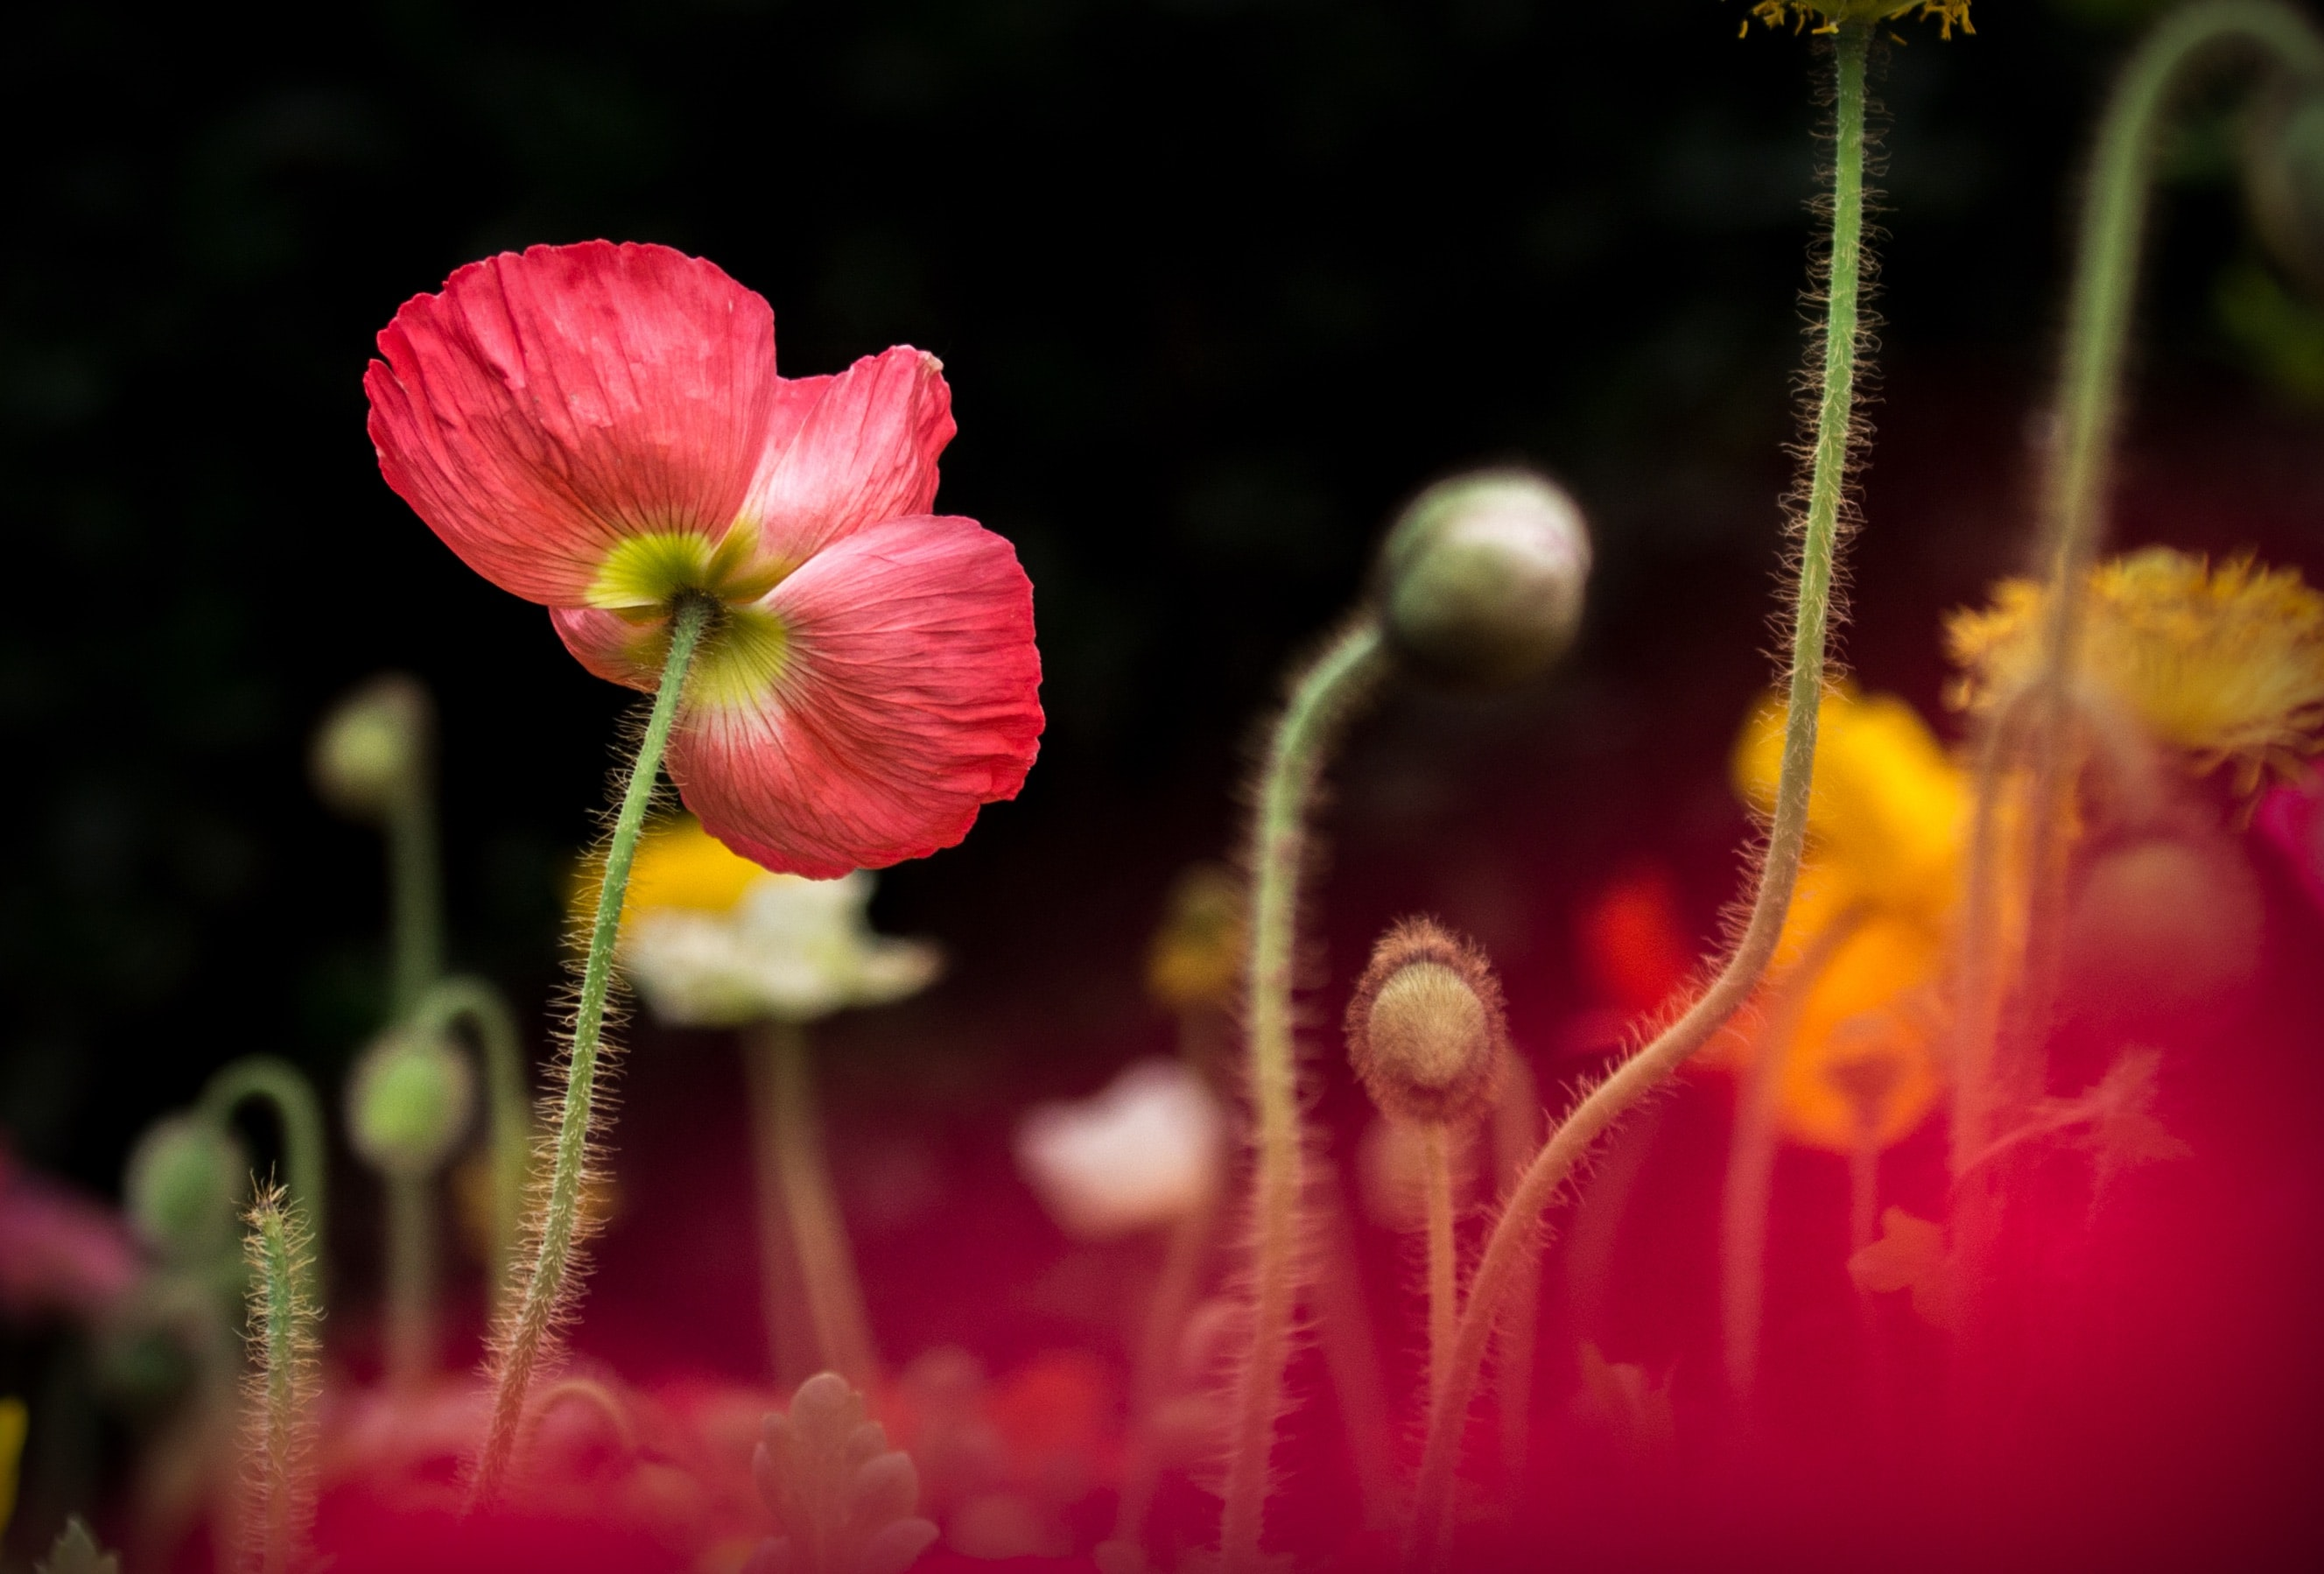 A low-angle shot of poppy flowers on long hairy stems